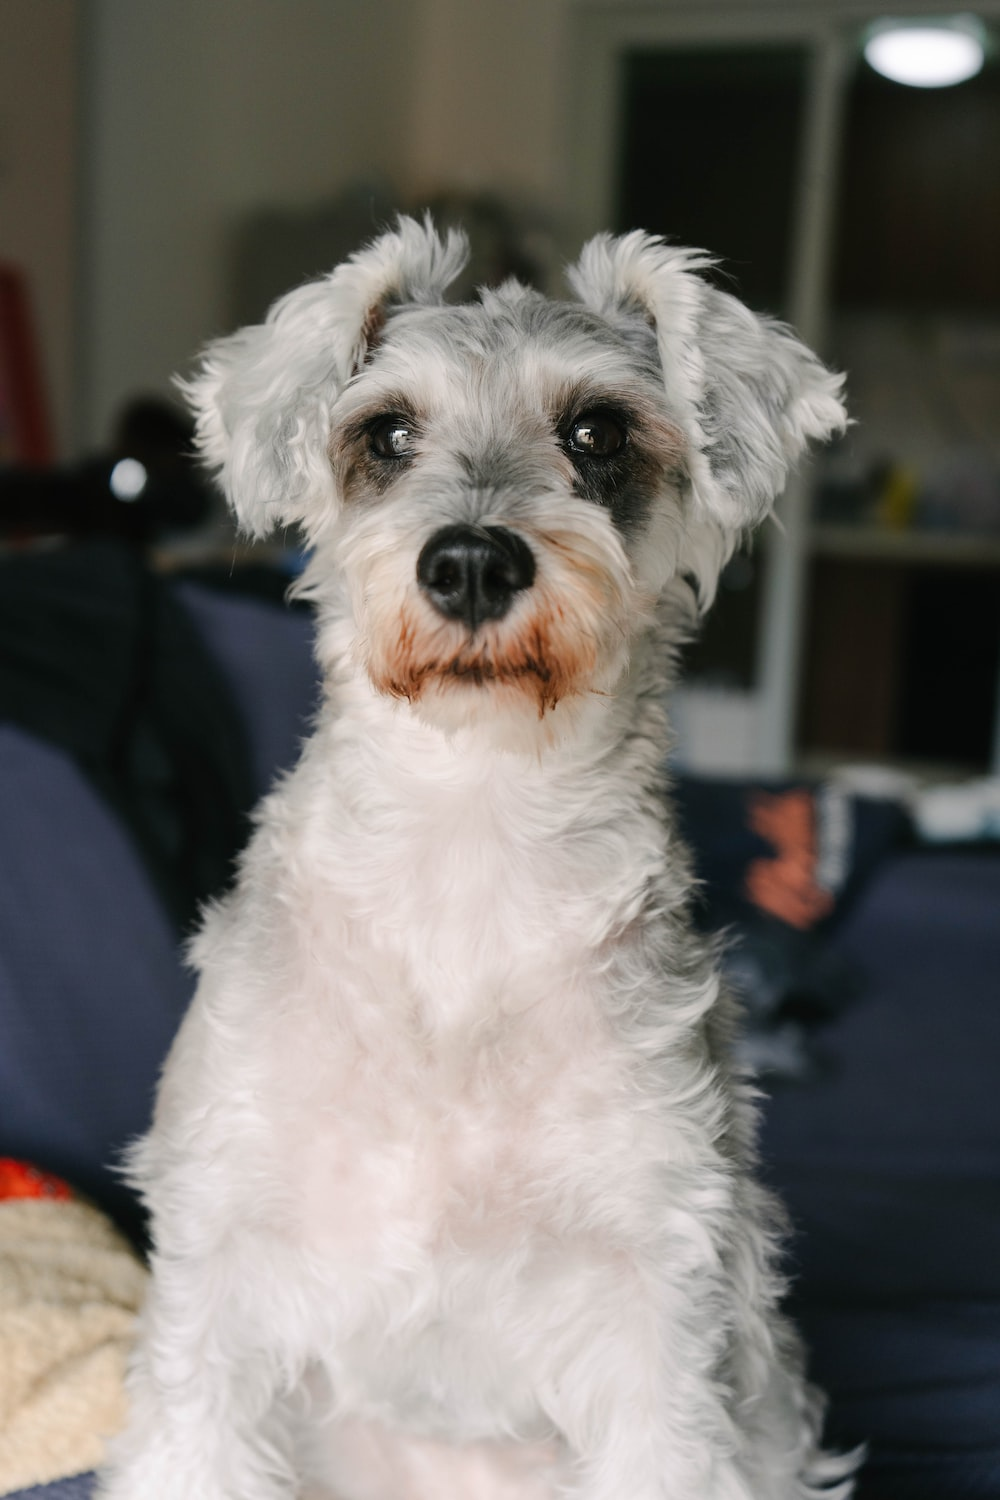 white and gray long coated small sized dog